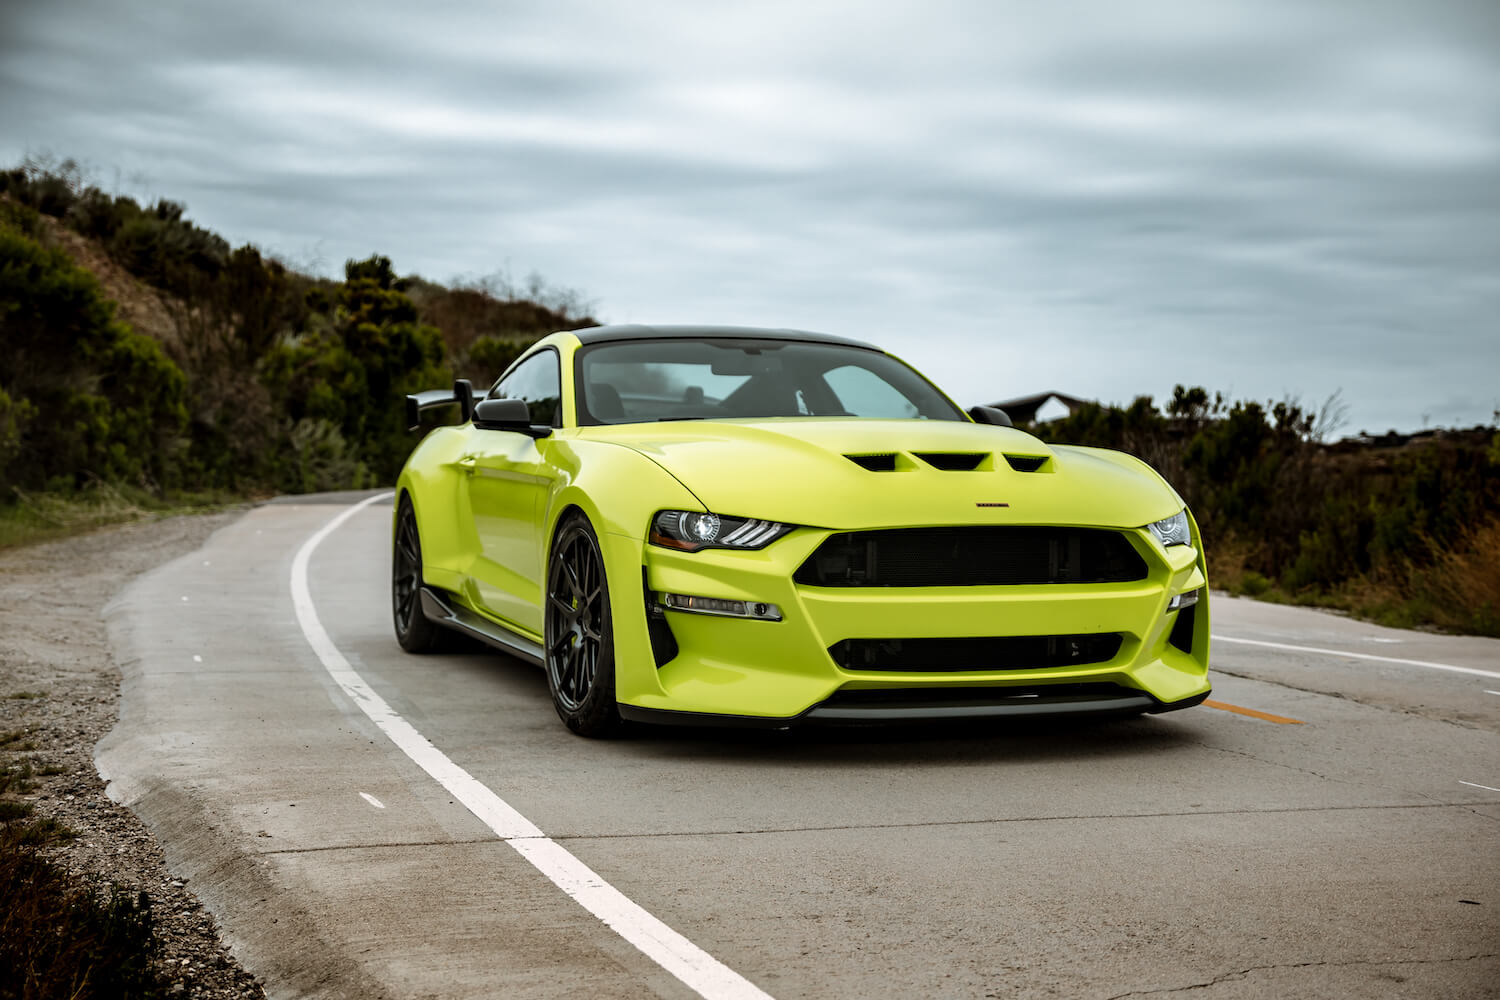 The Revenge GT from Peregrine Automotive